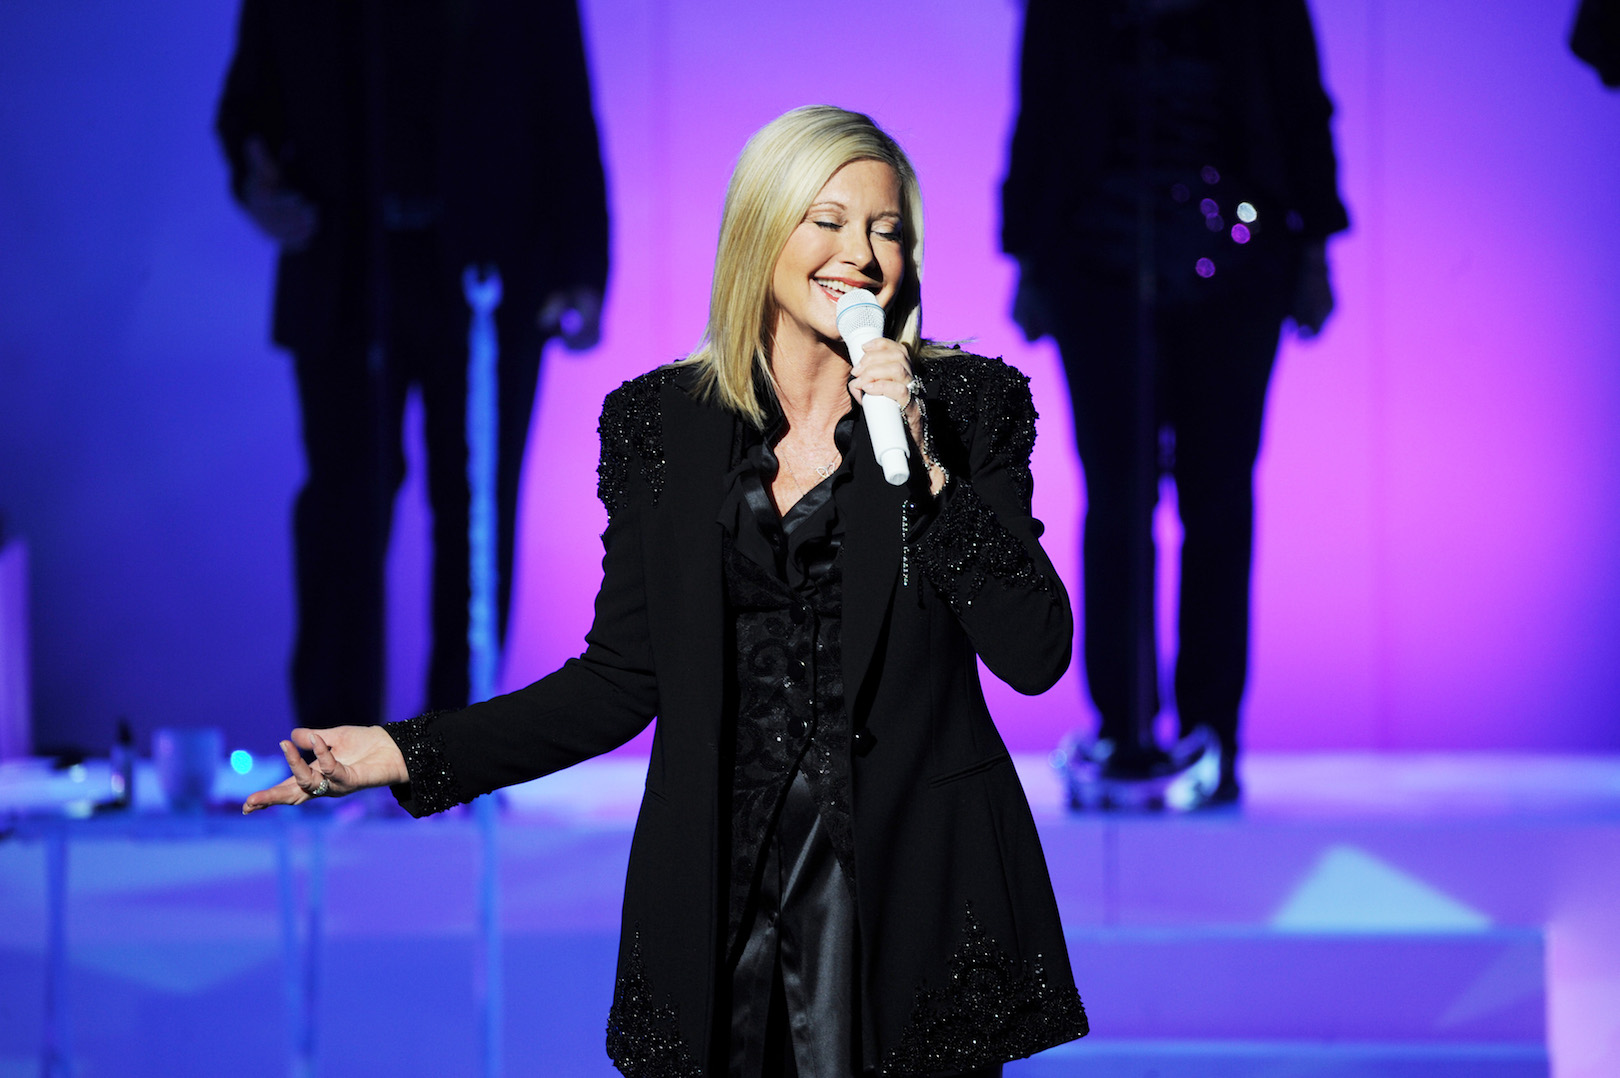 Olivia Newton-John on stage at the Flamingo Las Vegas. (Photo by Denise Truscello)